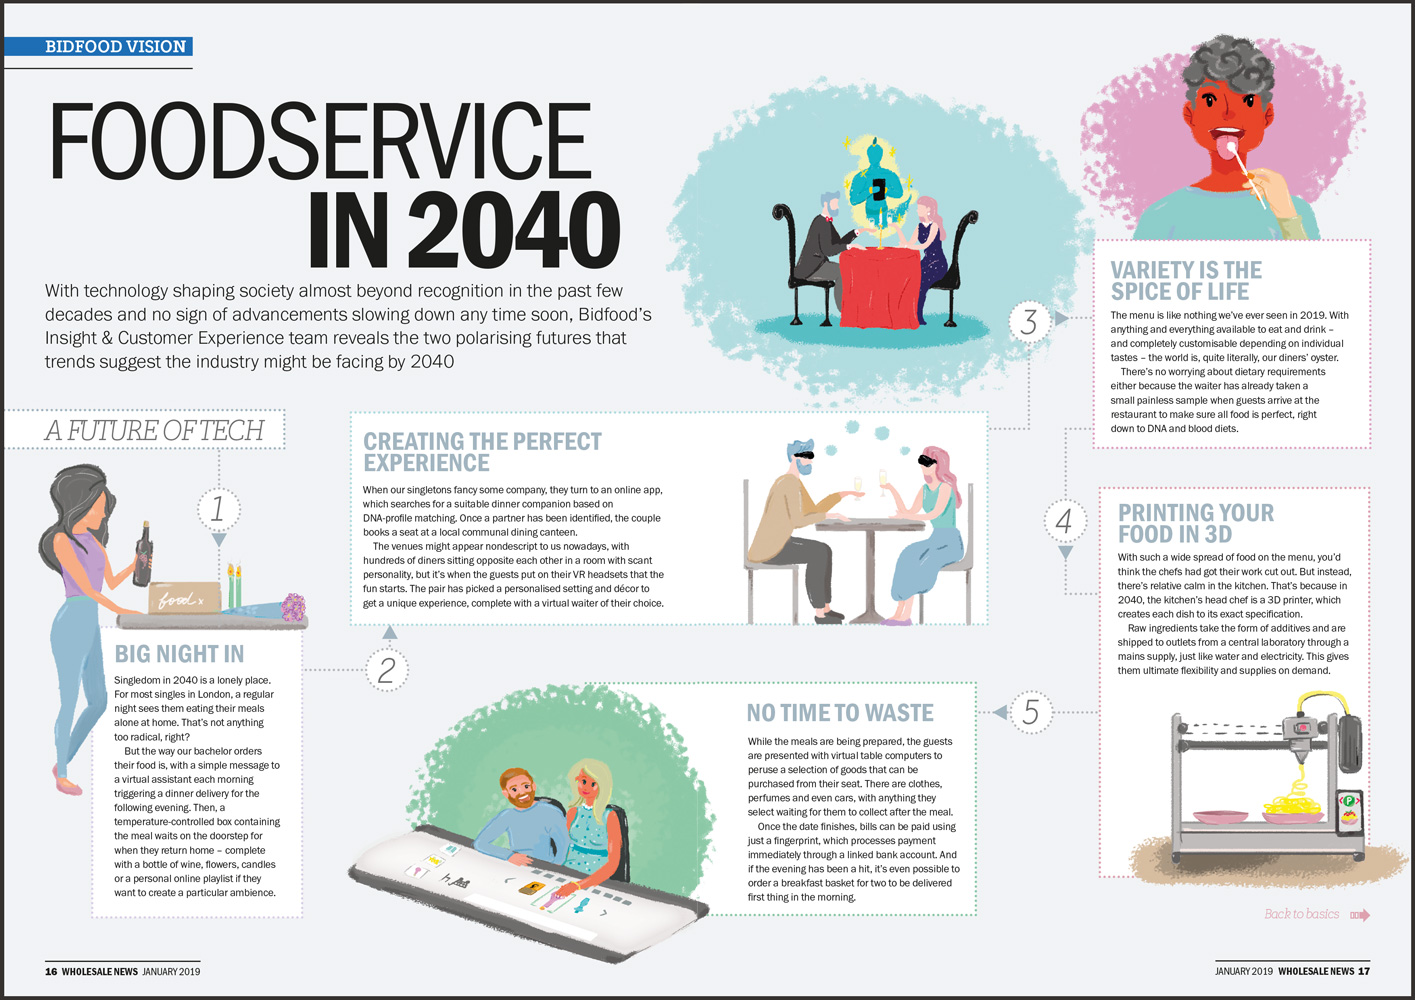 Bidfood's 2040 foodservice vision